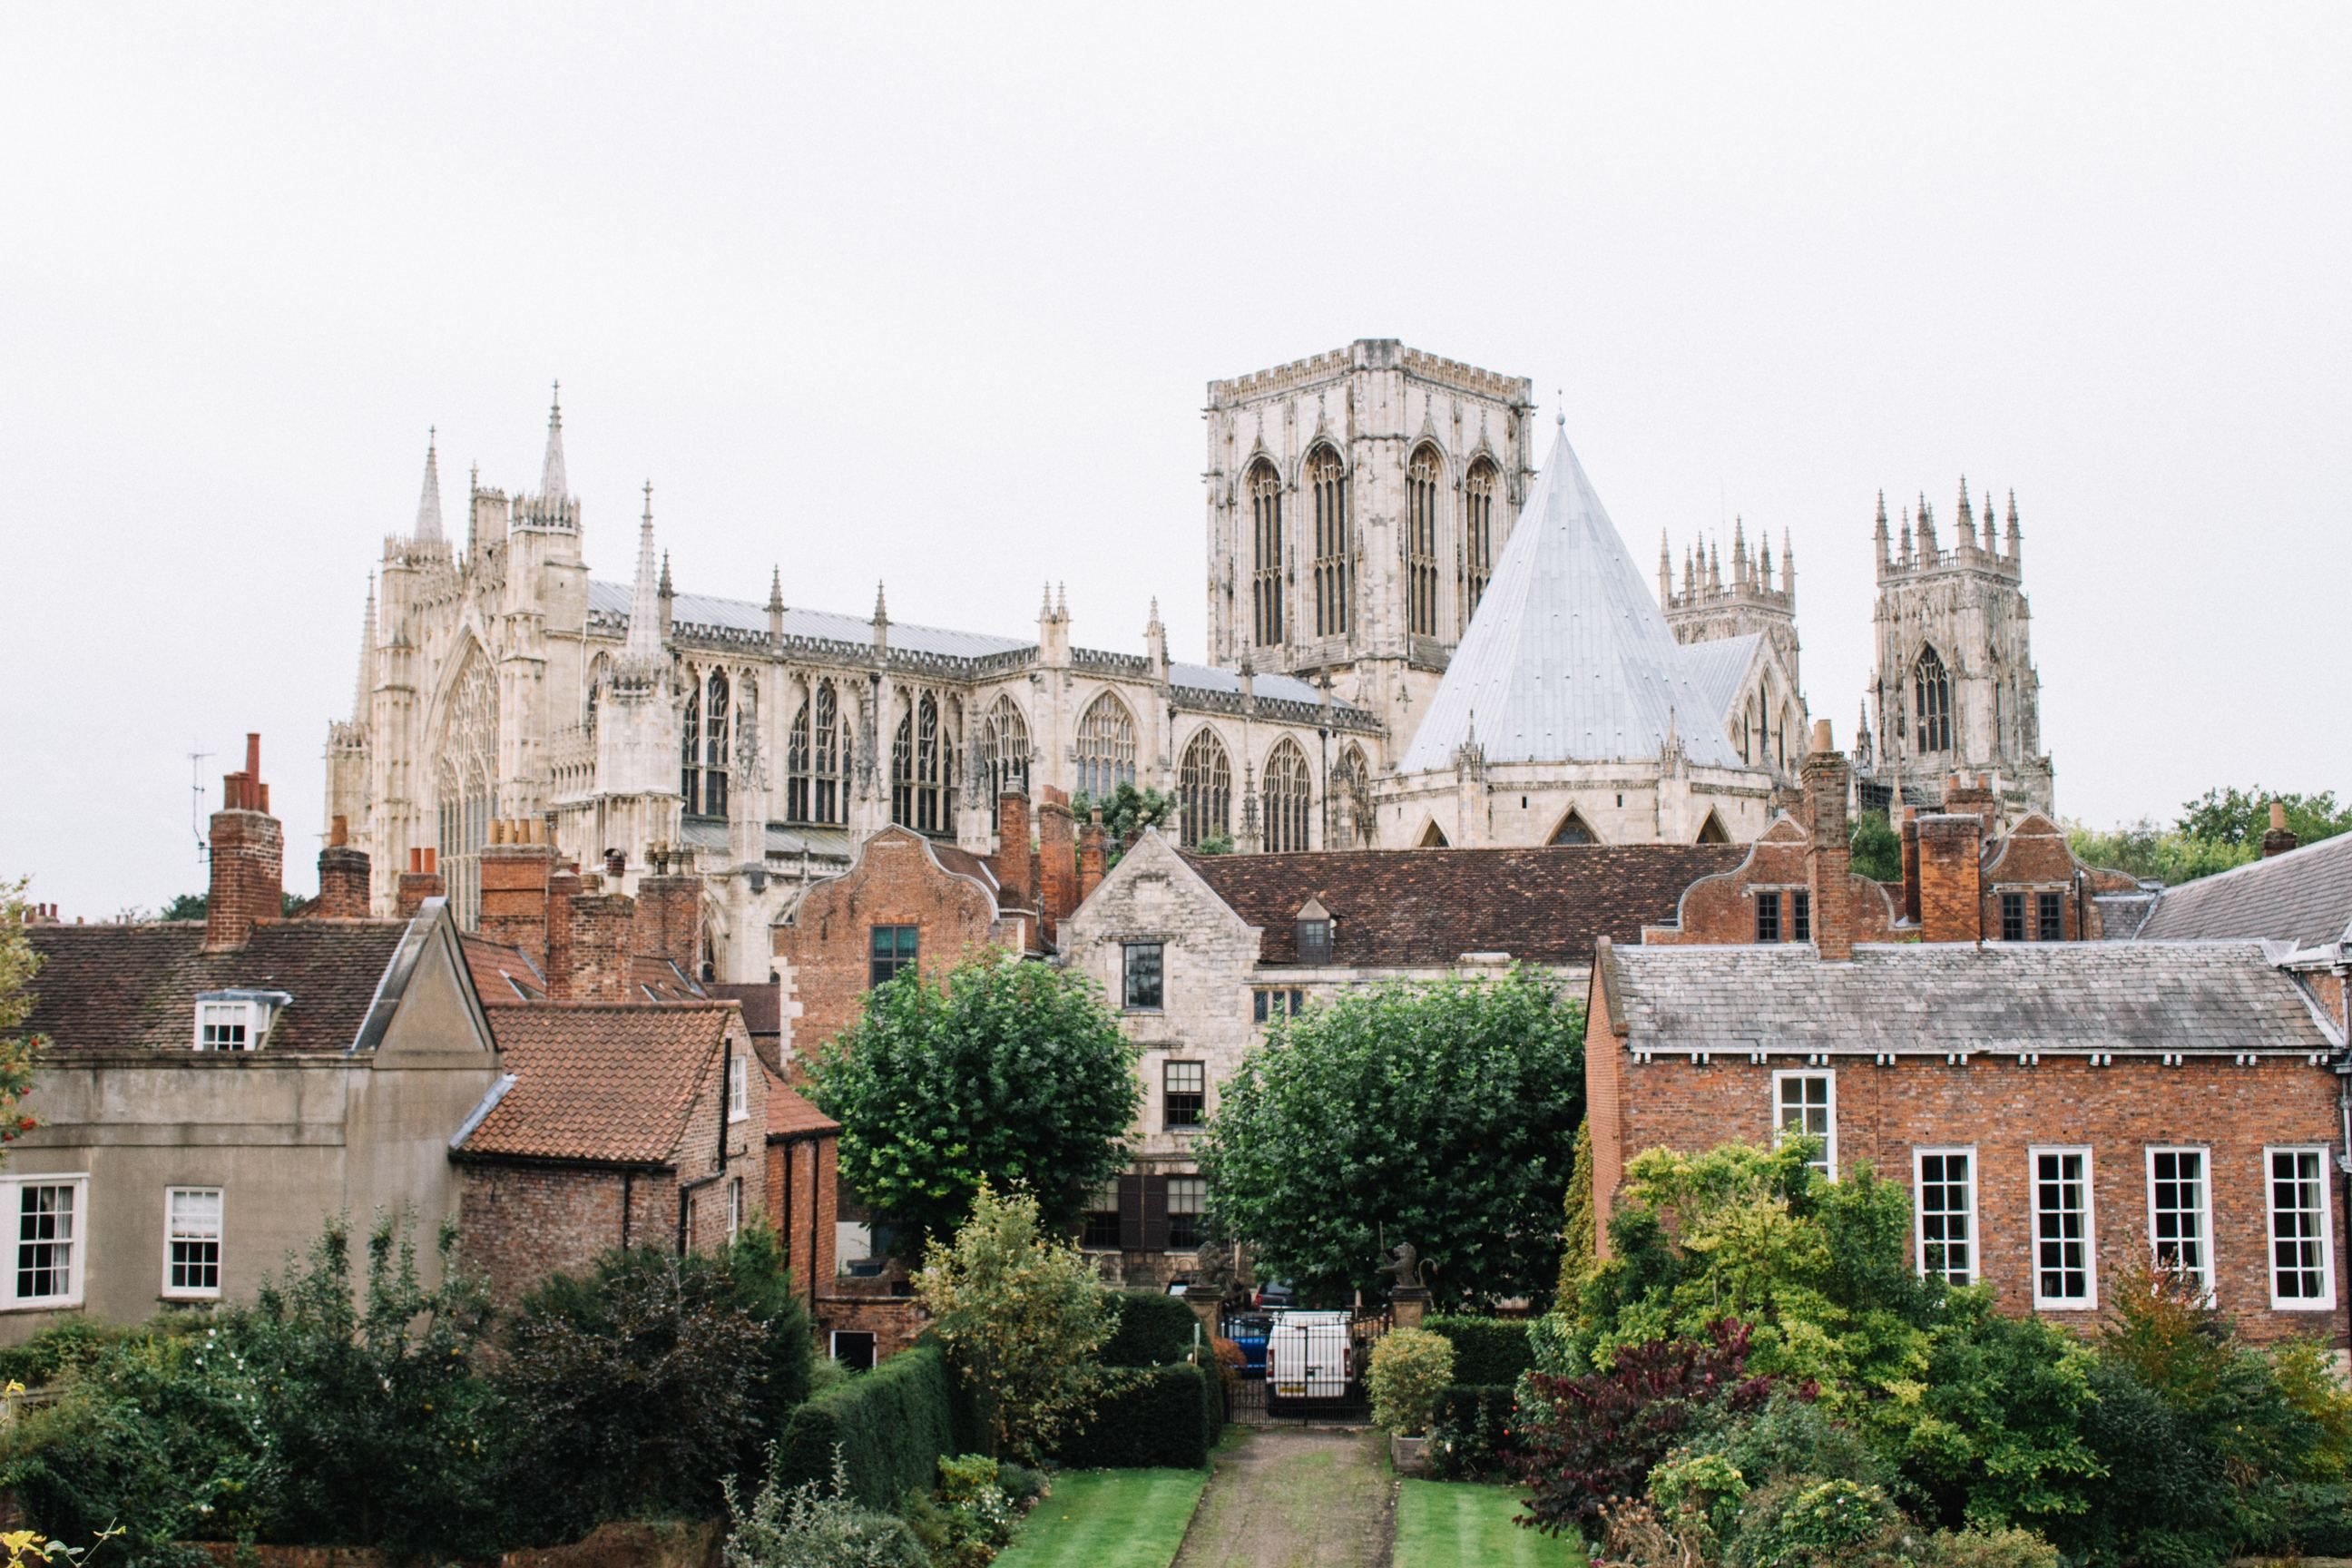 York Minster with houses